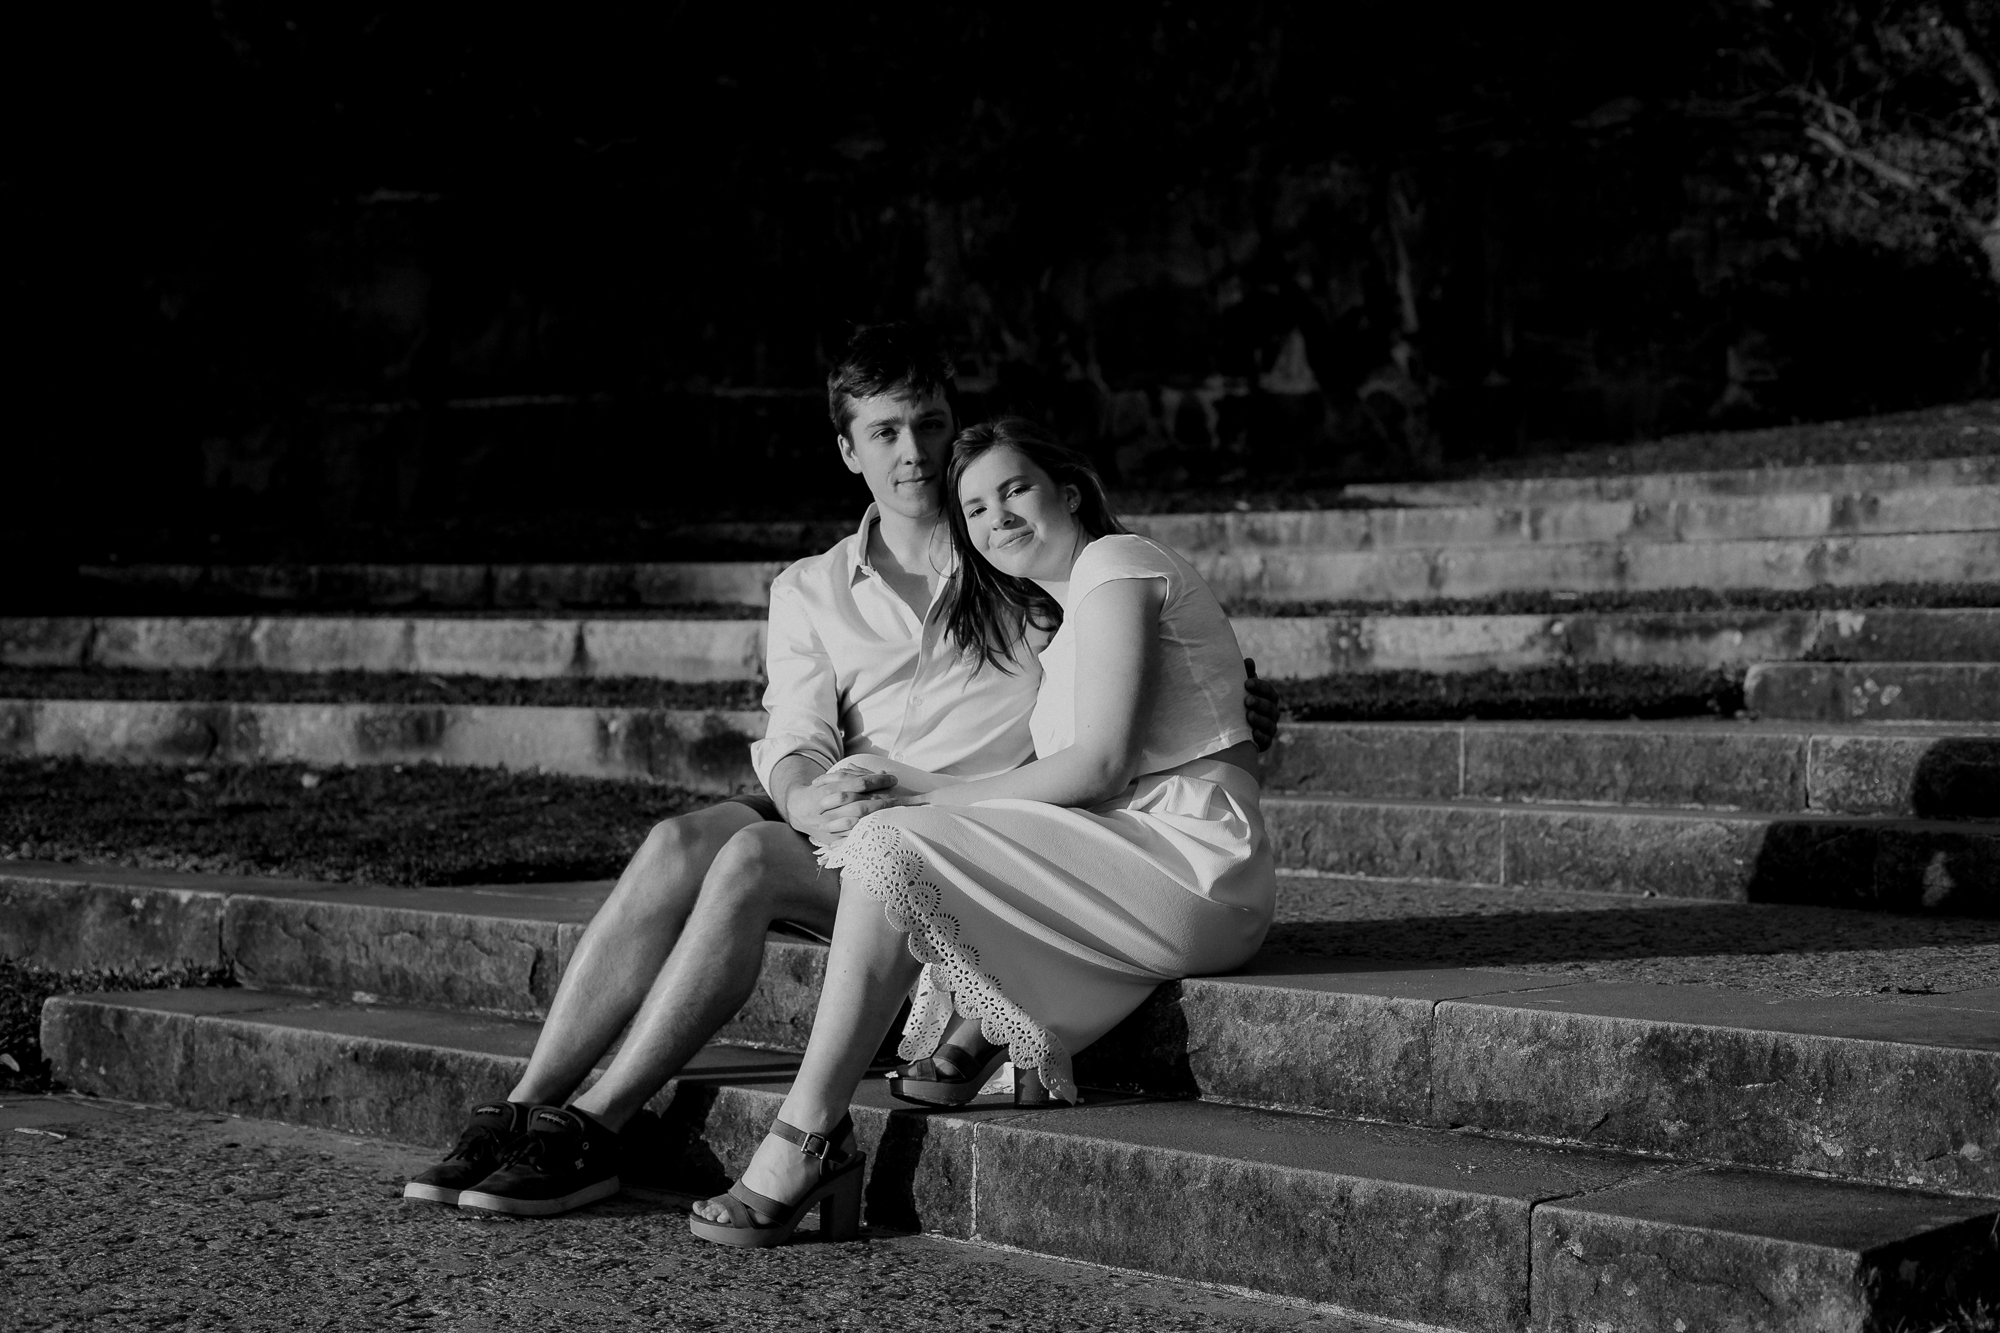 Amanzi and Steven_Engagement_Sydney_Holly Medway Photography-25.JPG